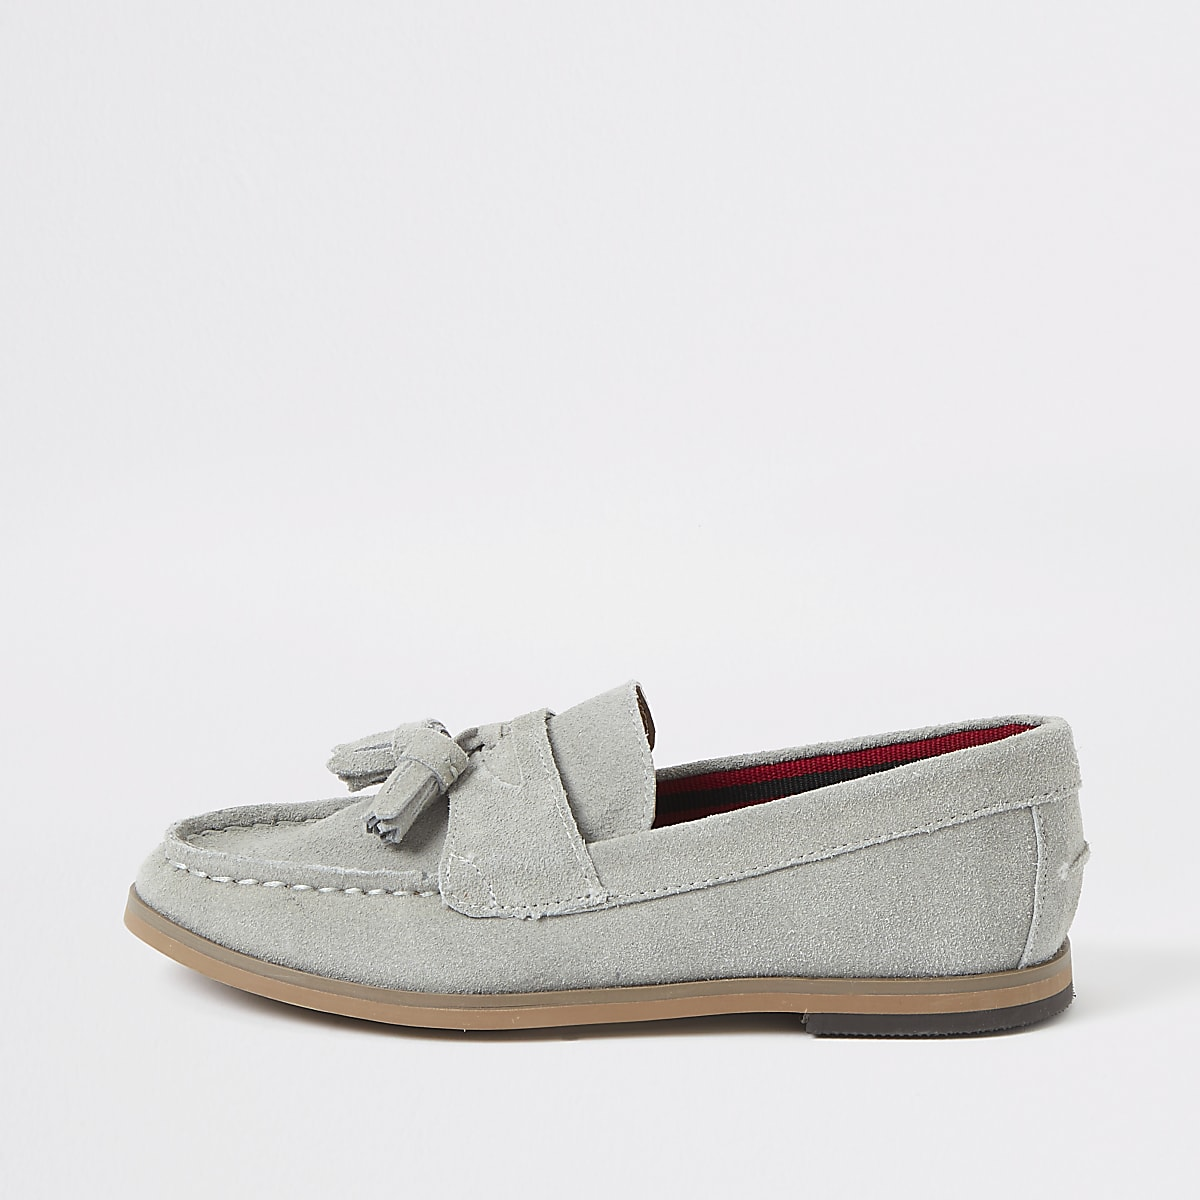 Boys light blue tassel loafers